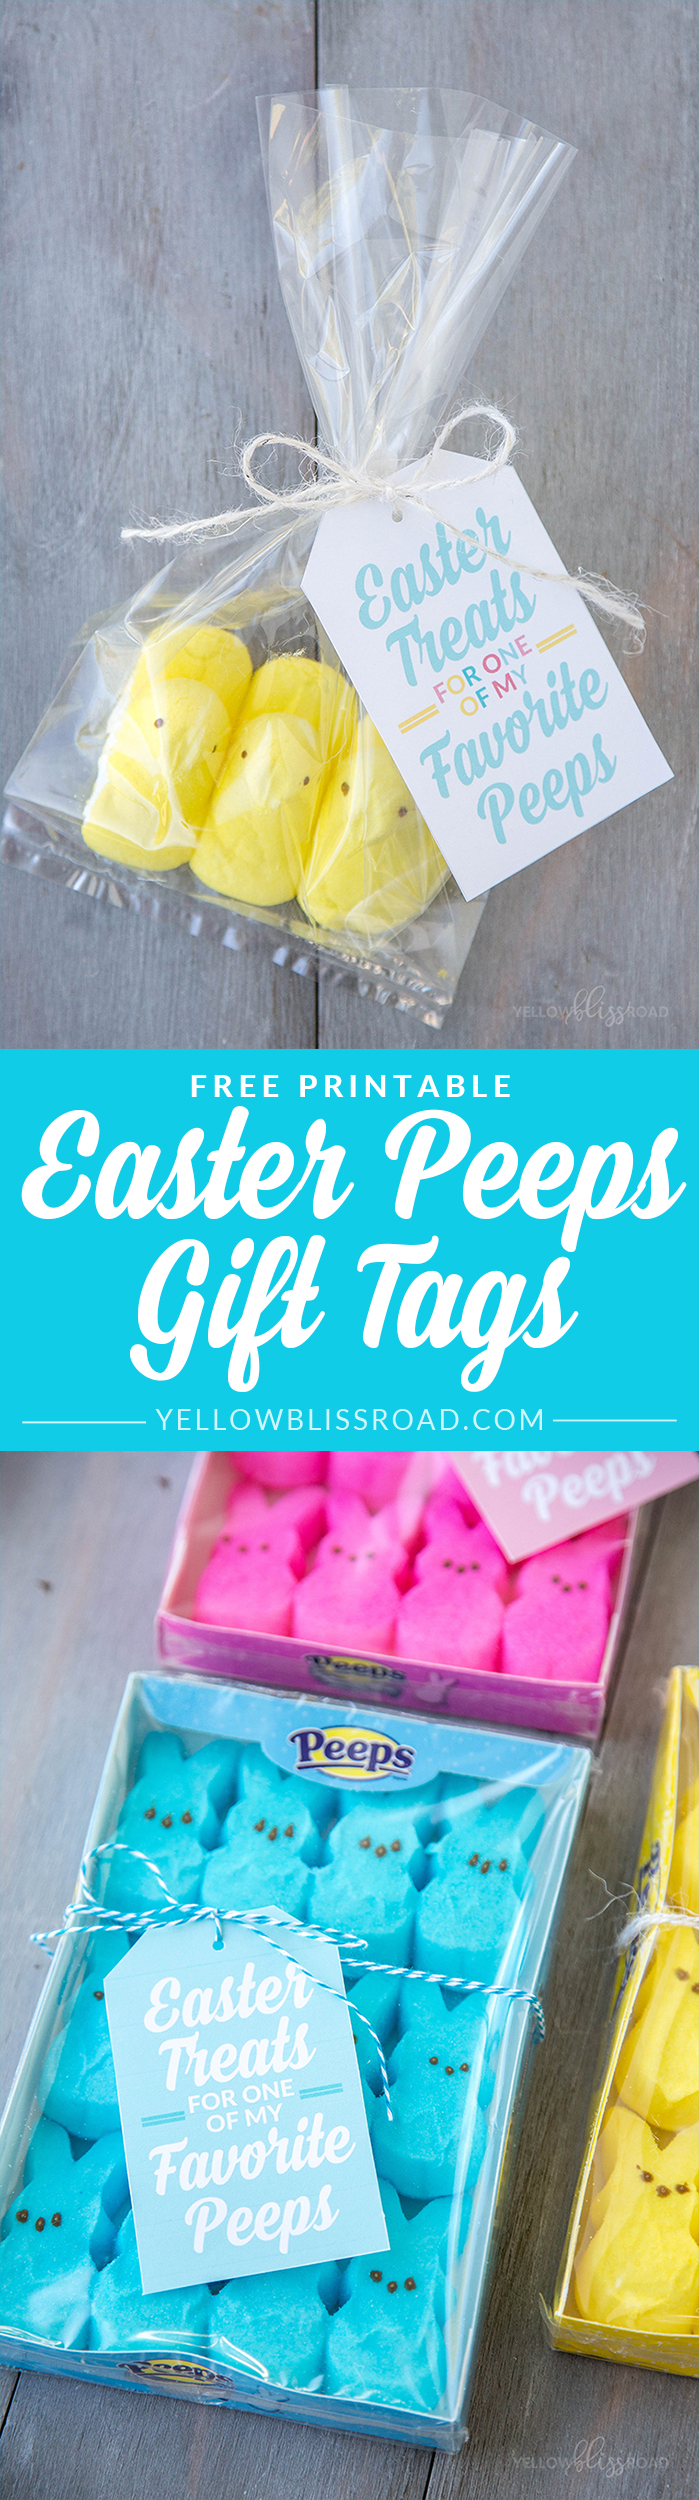 Peeps easter gift idea with free printables free printable easter free printable peeps gifts tags for easter cute classroom friends or neighbor easter gifts negle Images